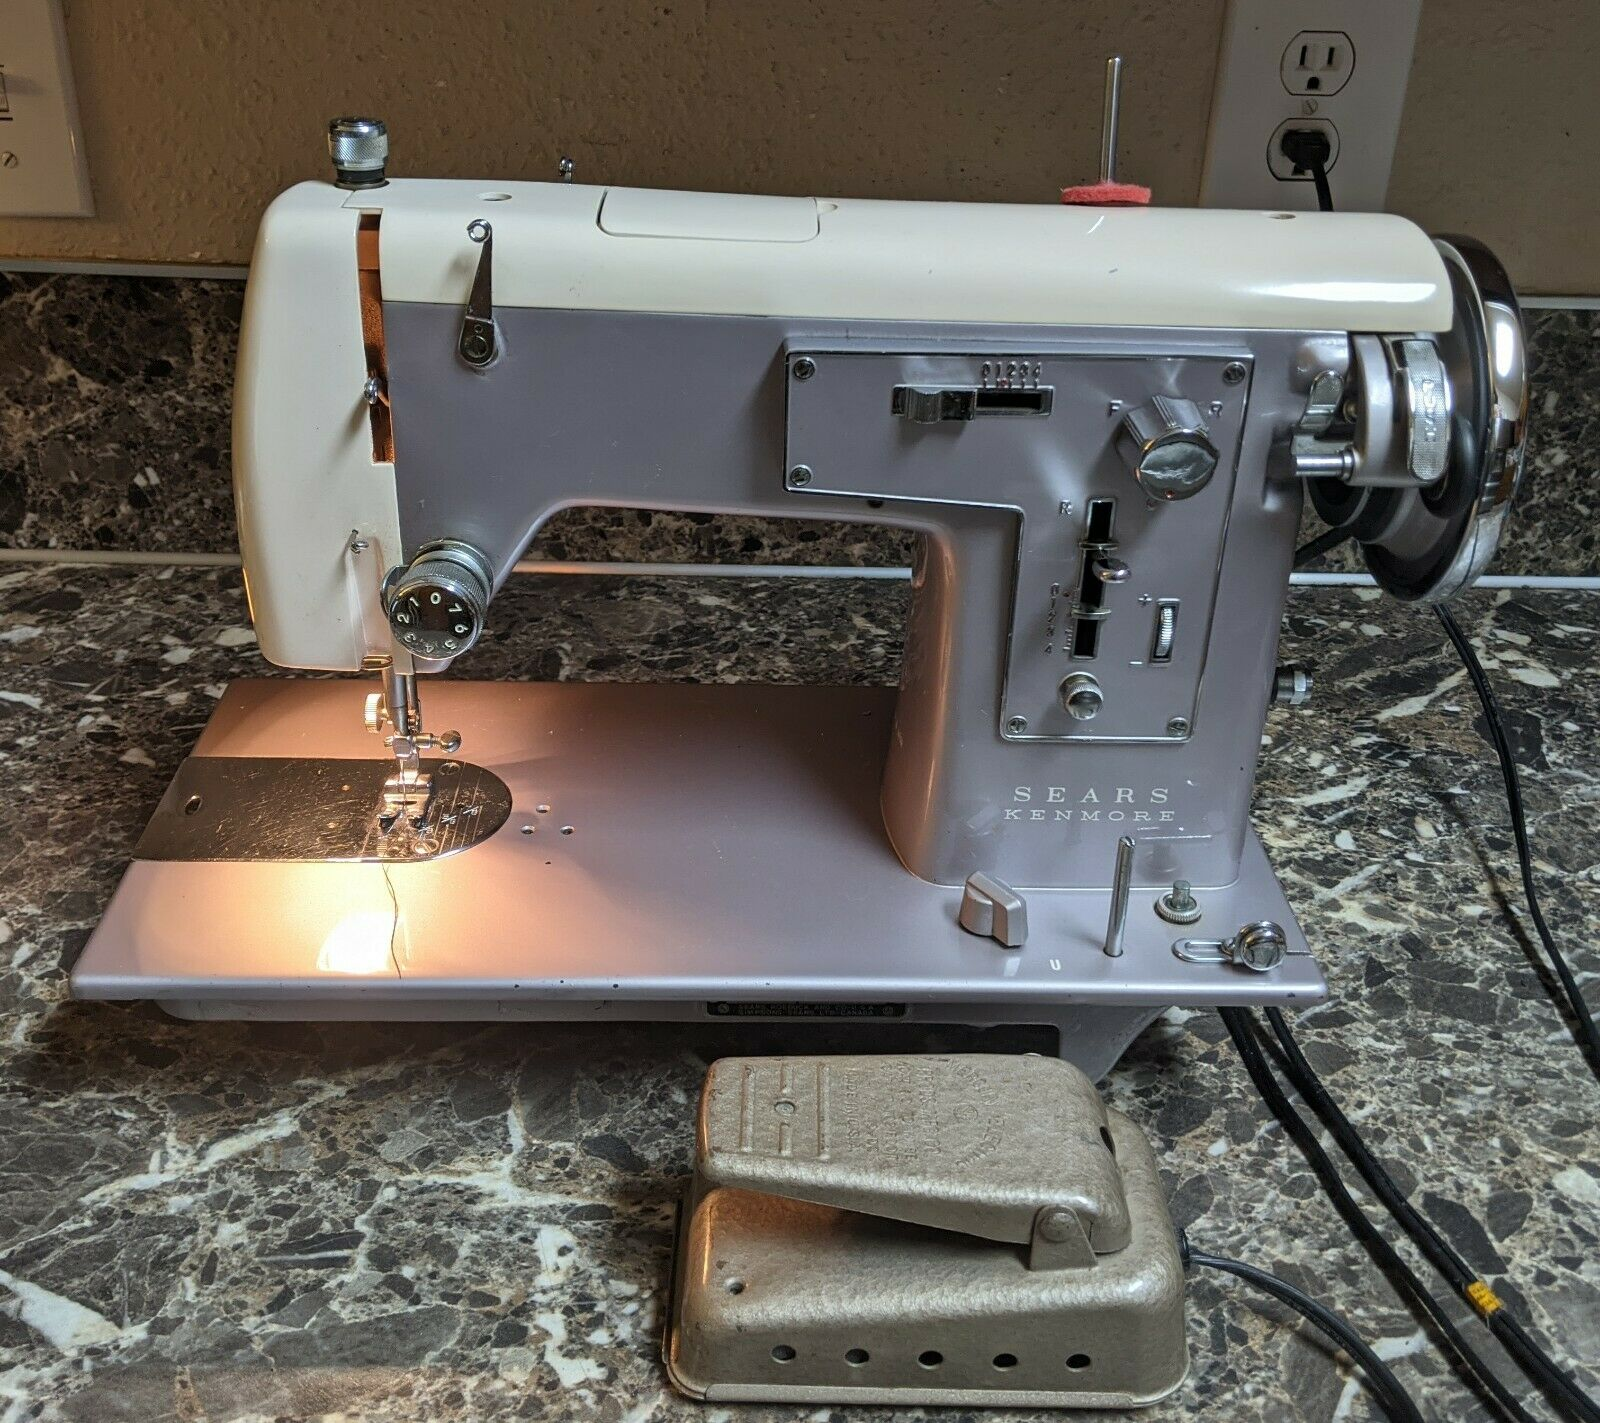 Sears Kenmore Model 158 19470 Sewing Machine Made In Japan Tested Working For Sale Online Ebay